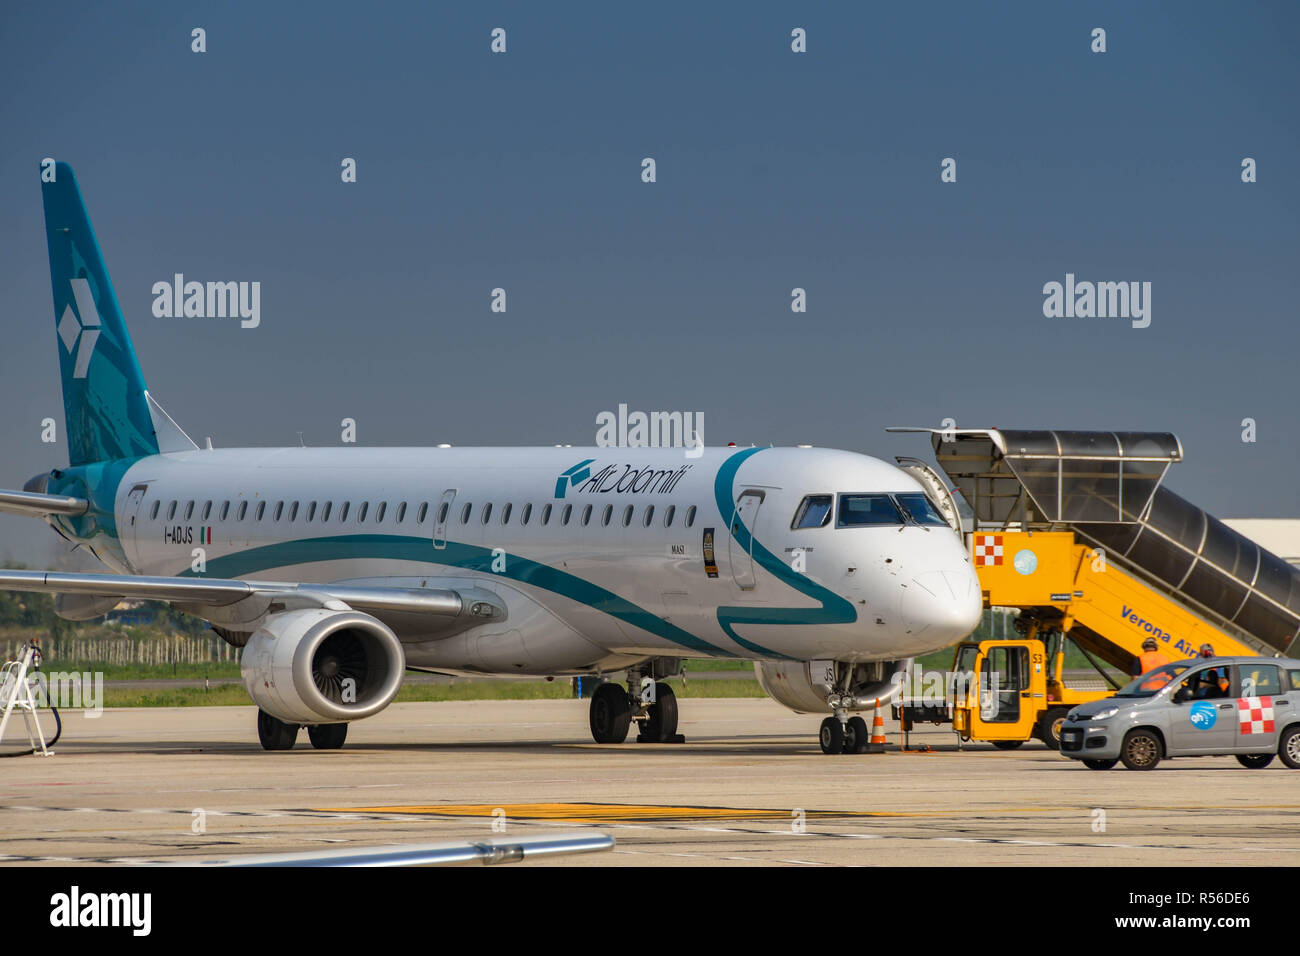 Air Dolomiti jet on the ground at Verona airport, Italy - Stock Image